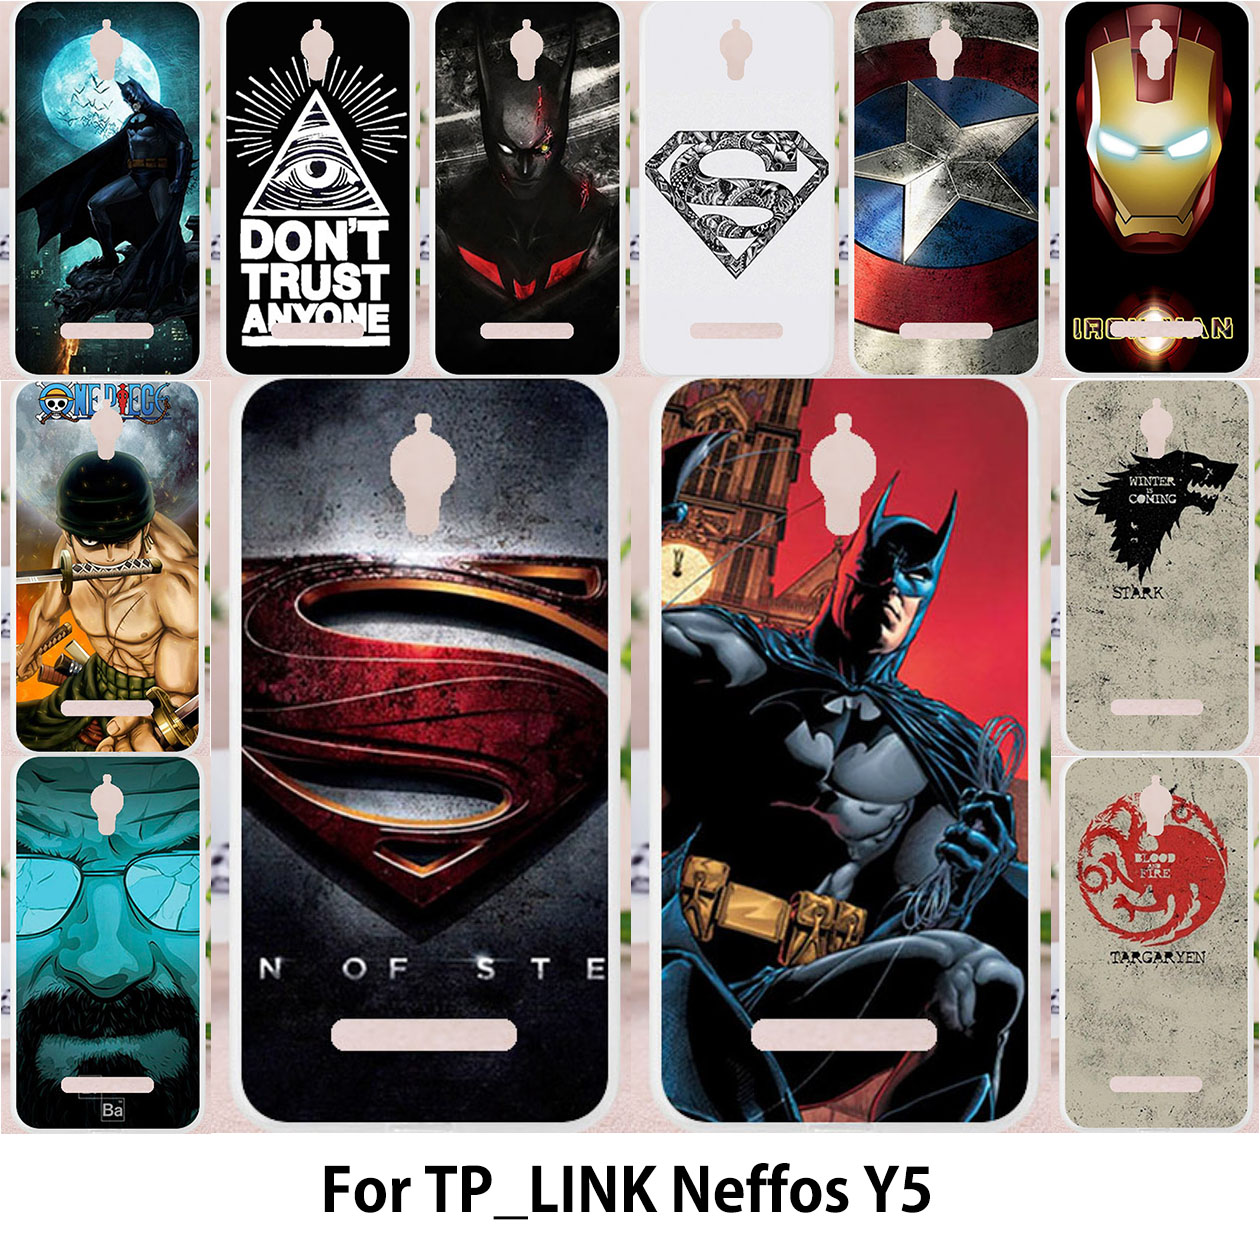 TAOYUNXI For TP-LINK Neffos Y5 case Silicon Case For TPLINK Neffos Y5 TP802A TP LINK Cover Shield Bat Tower Patterned Man Covers